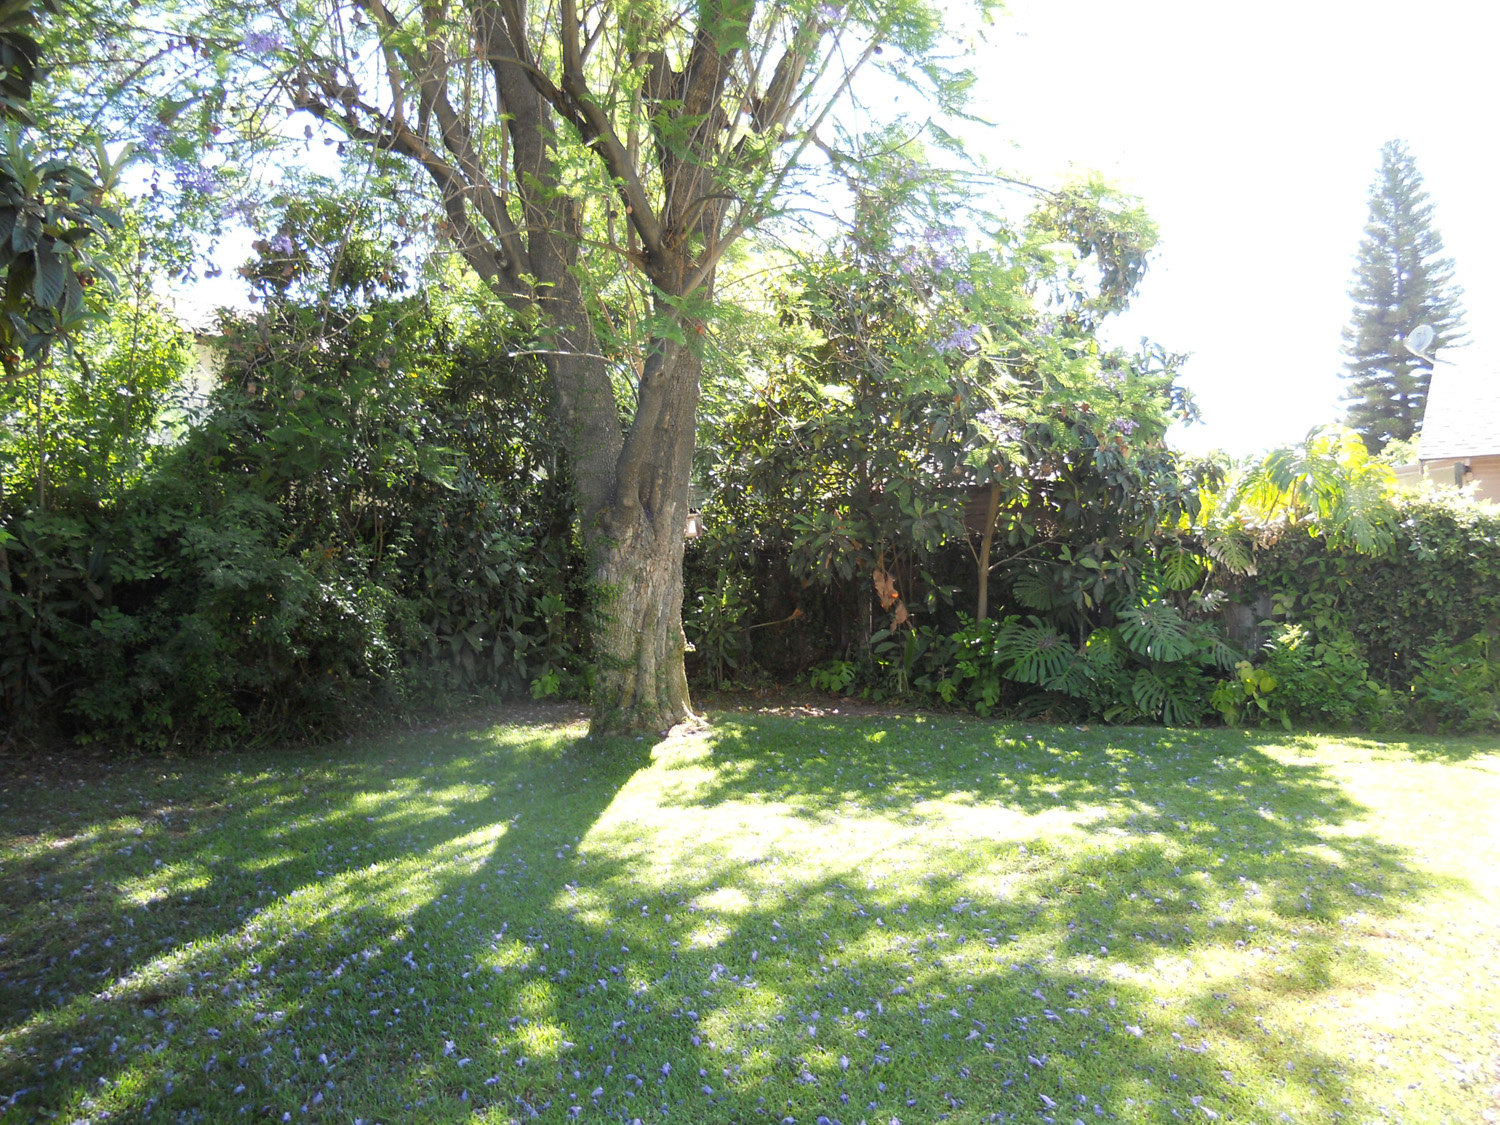 Shaded and private backyard with mature trees.